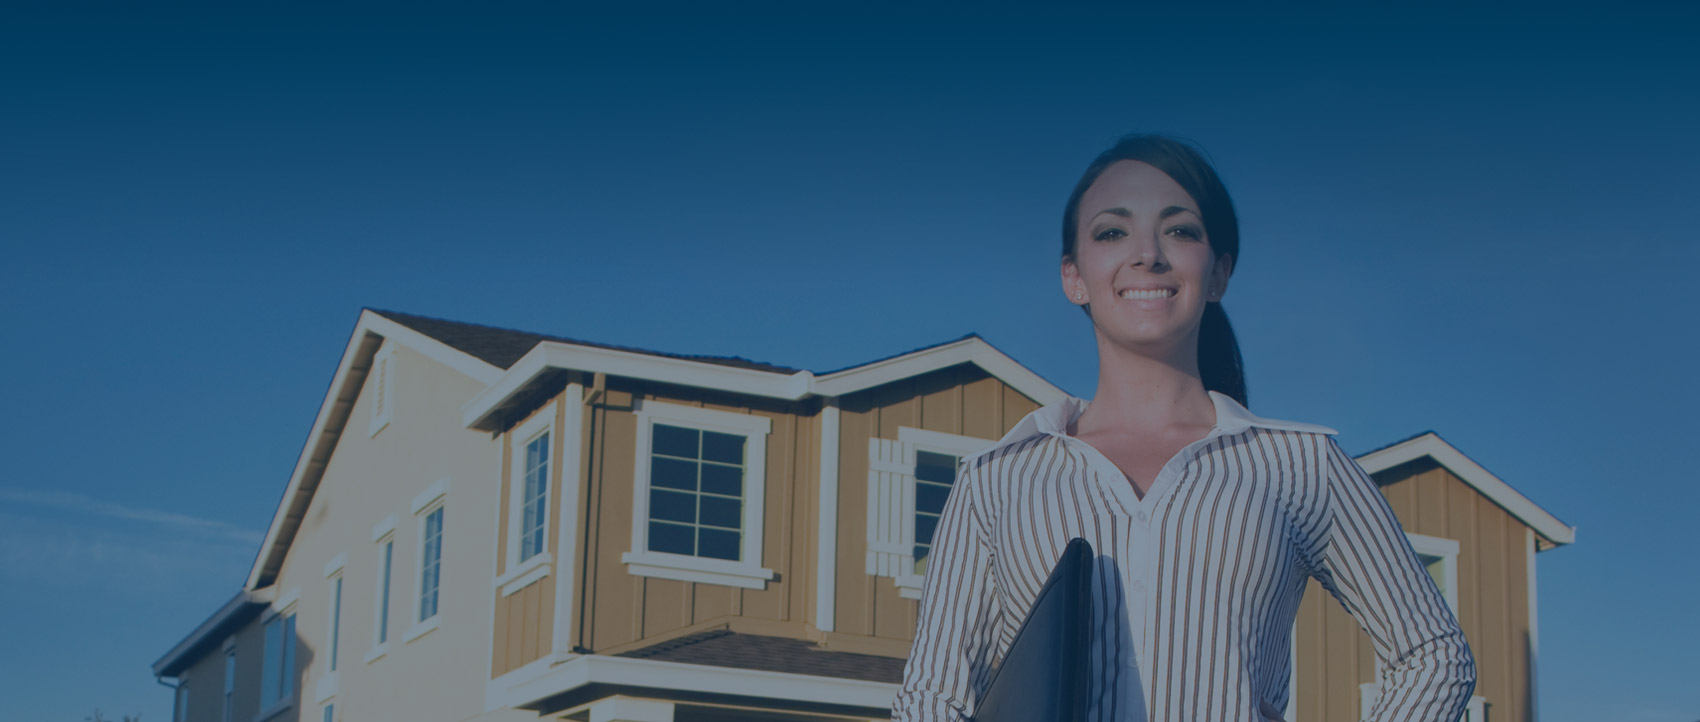 Home Inspection Morristown